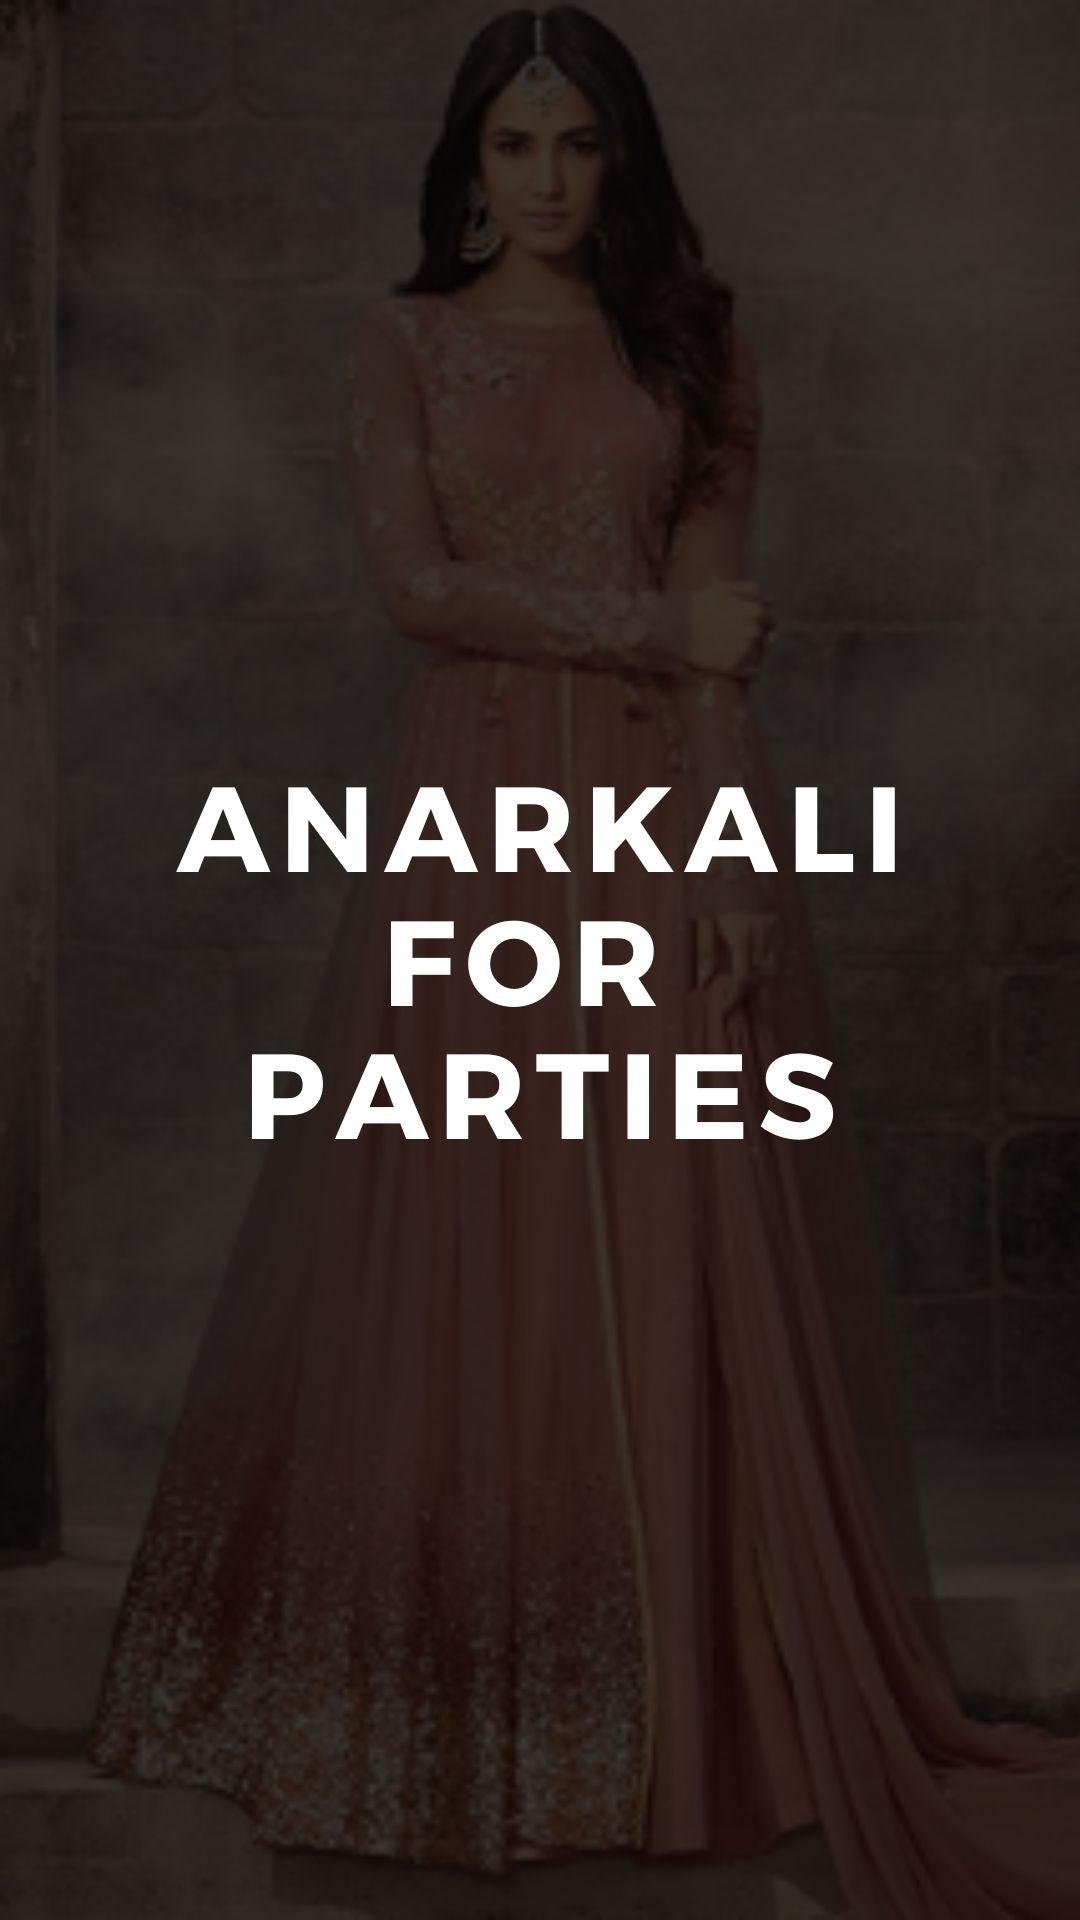 Anarkali for Parties